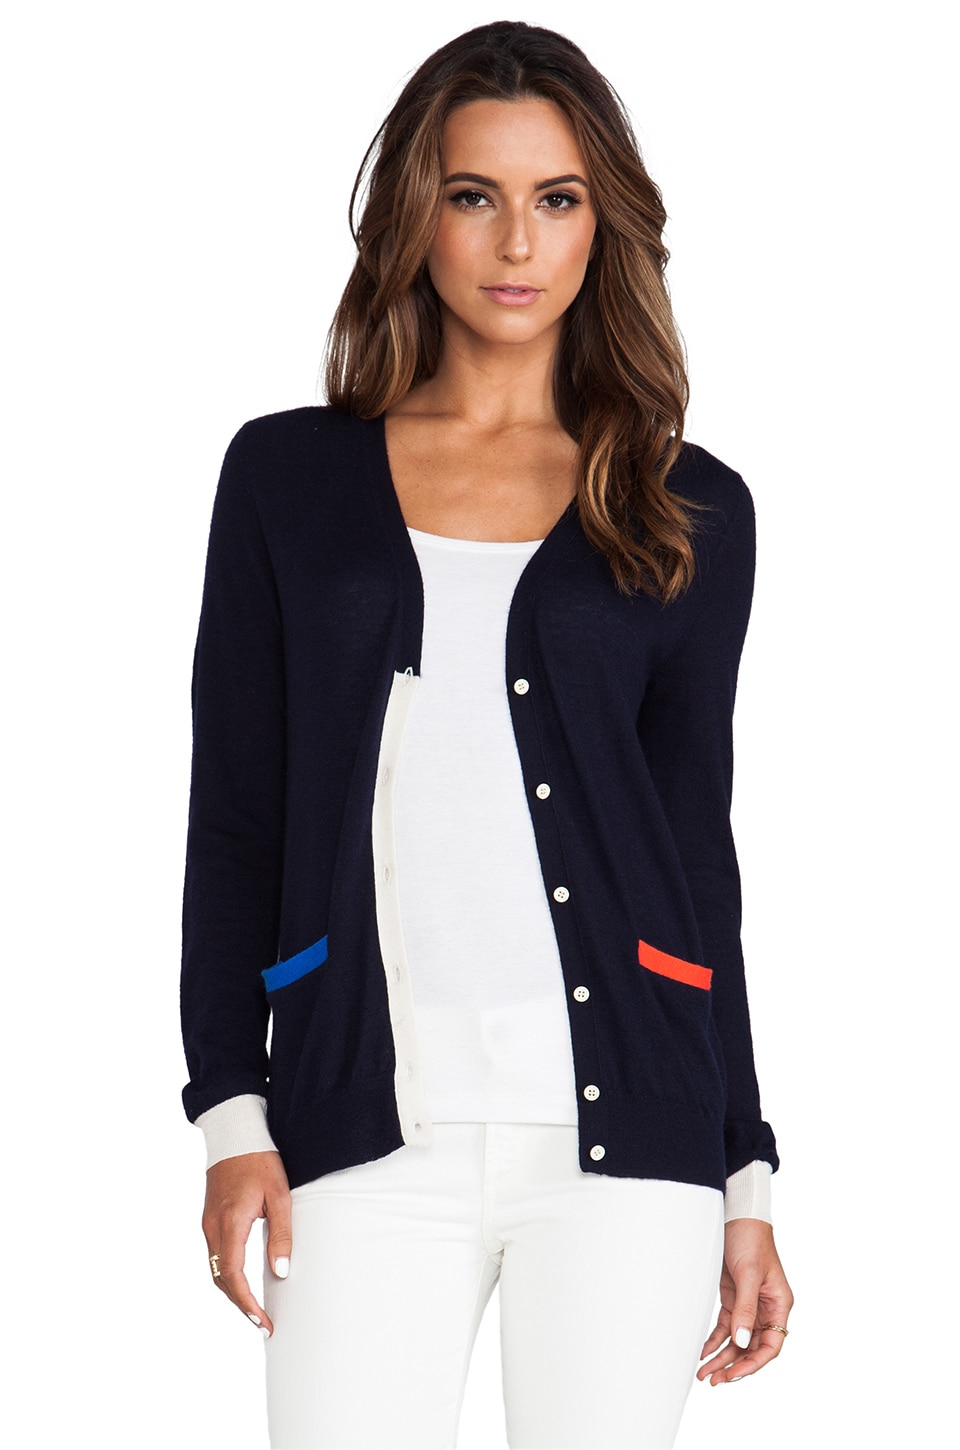 DemyLee Kofi Cardigan in Navy & Blue & Red